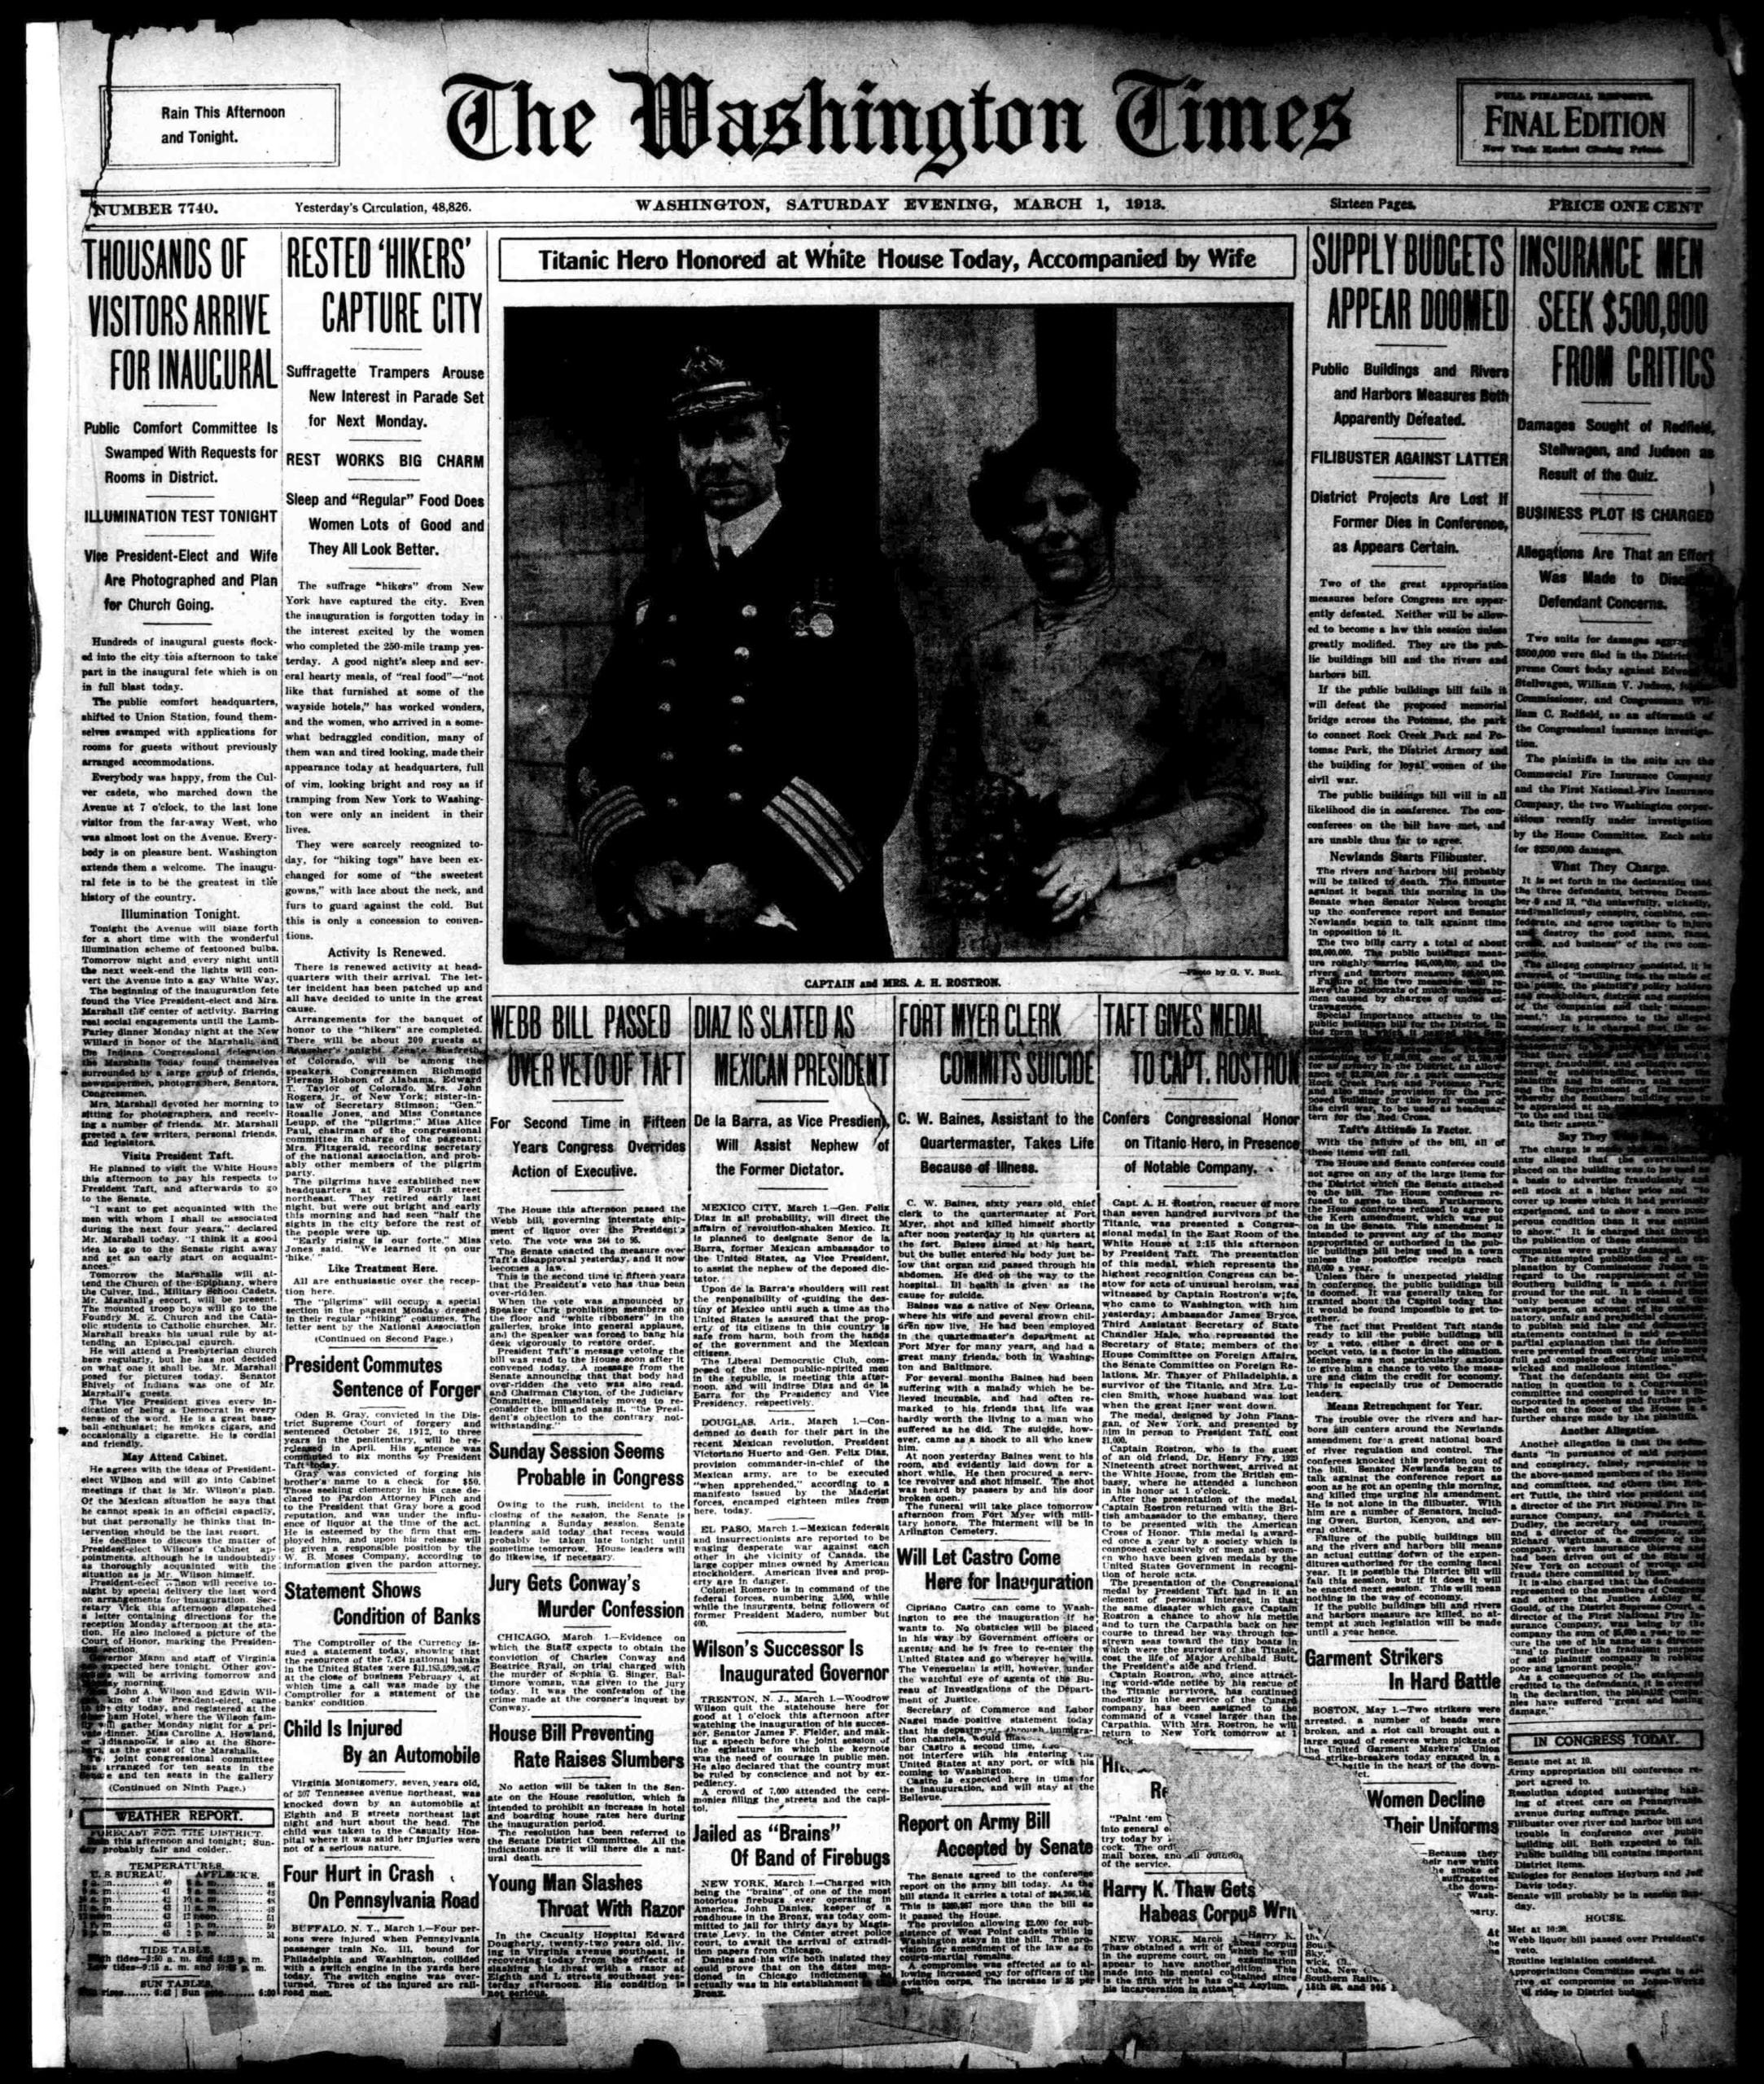 March 1st, 1913: Titanic Hero Honored at White House